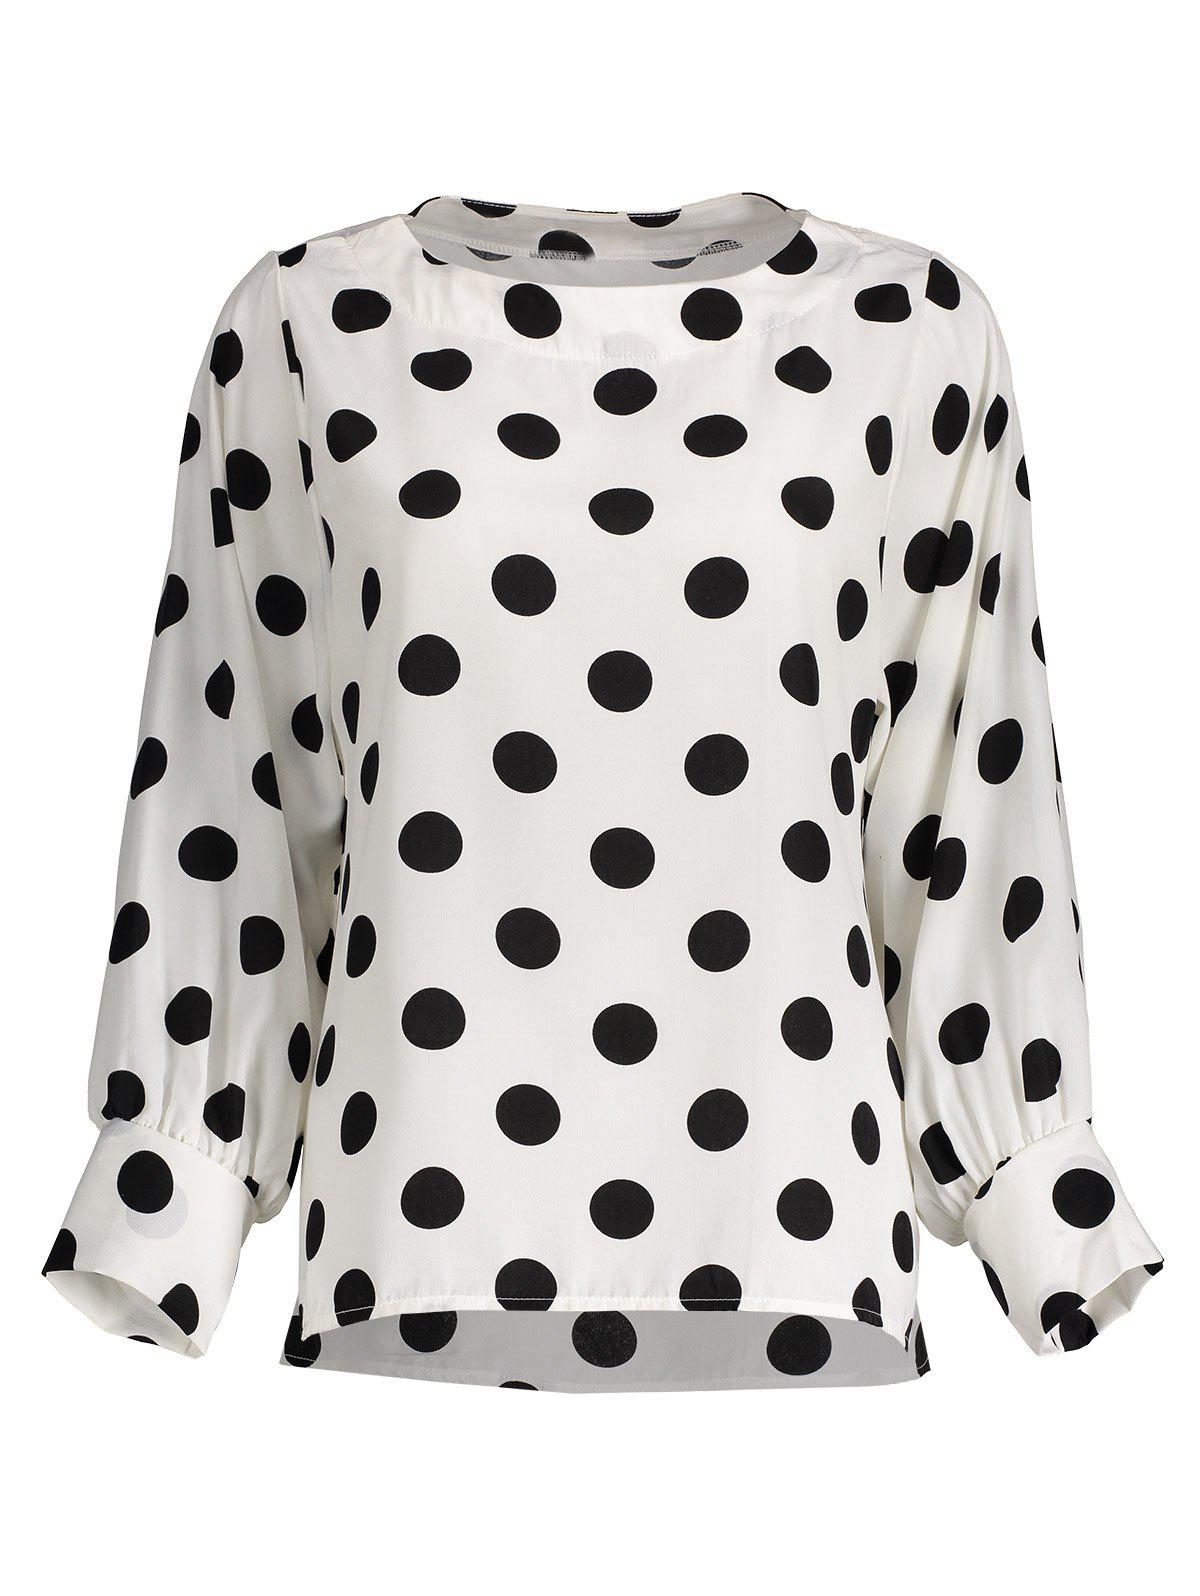 Polka Dot Long Sleeves Blouse - OFF WHITE S